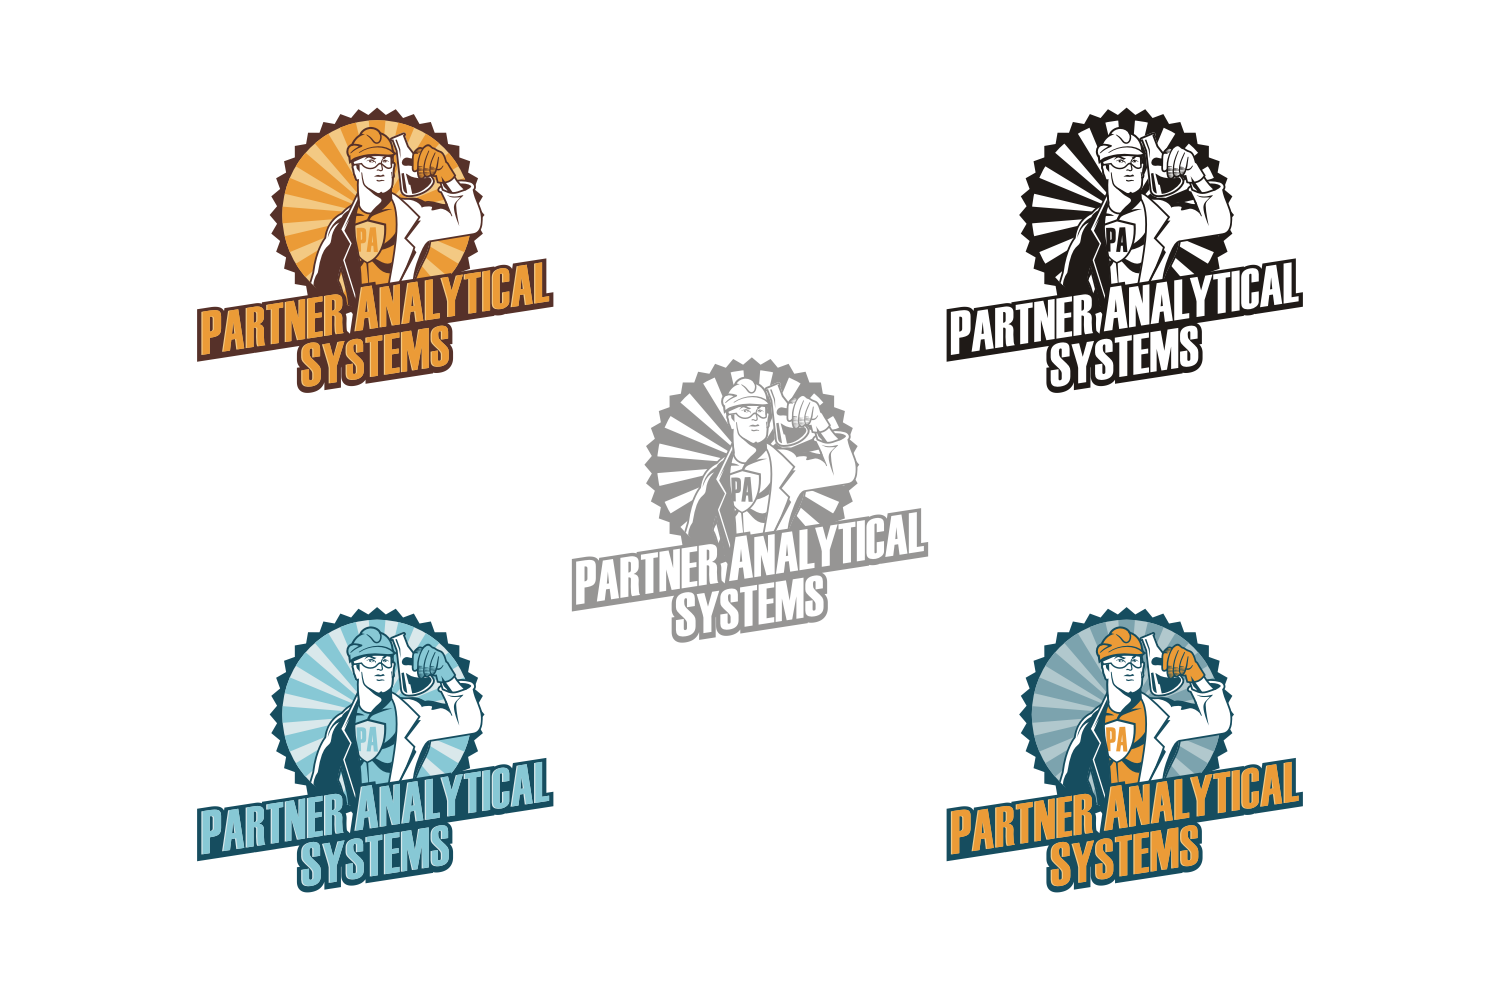 logo for Partner Analytical Systems